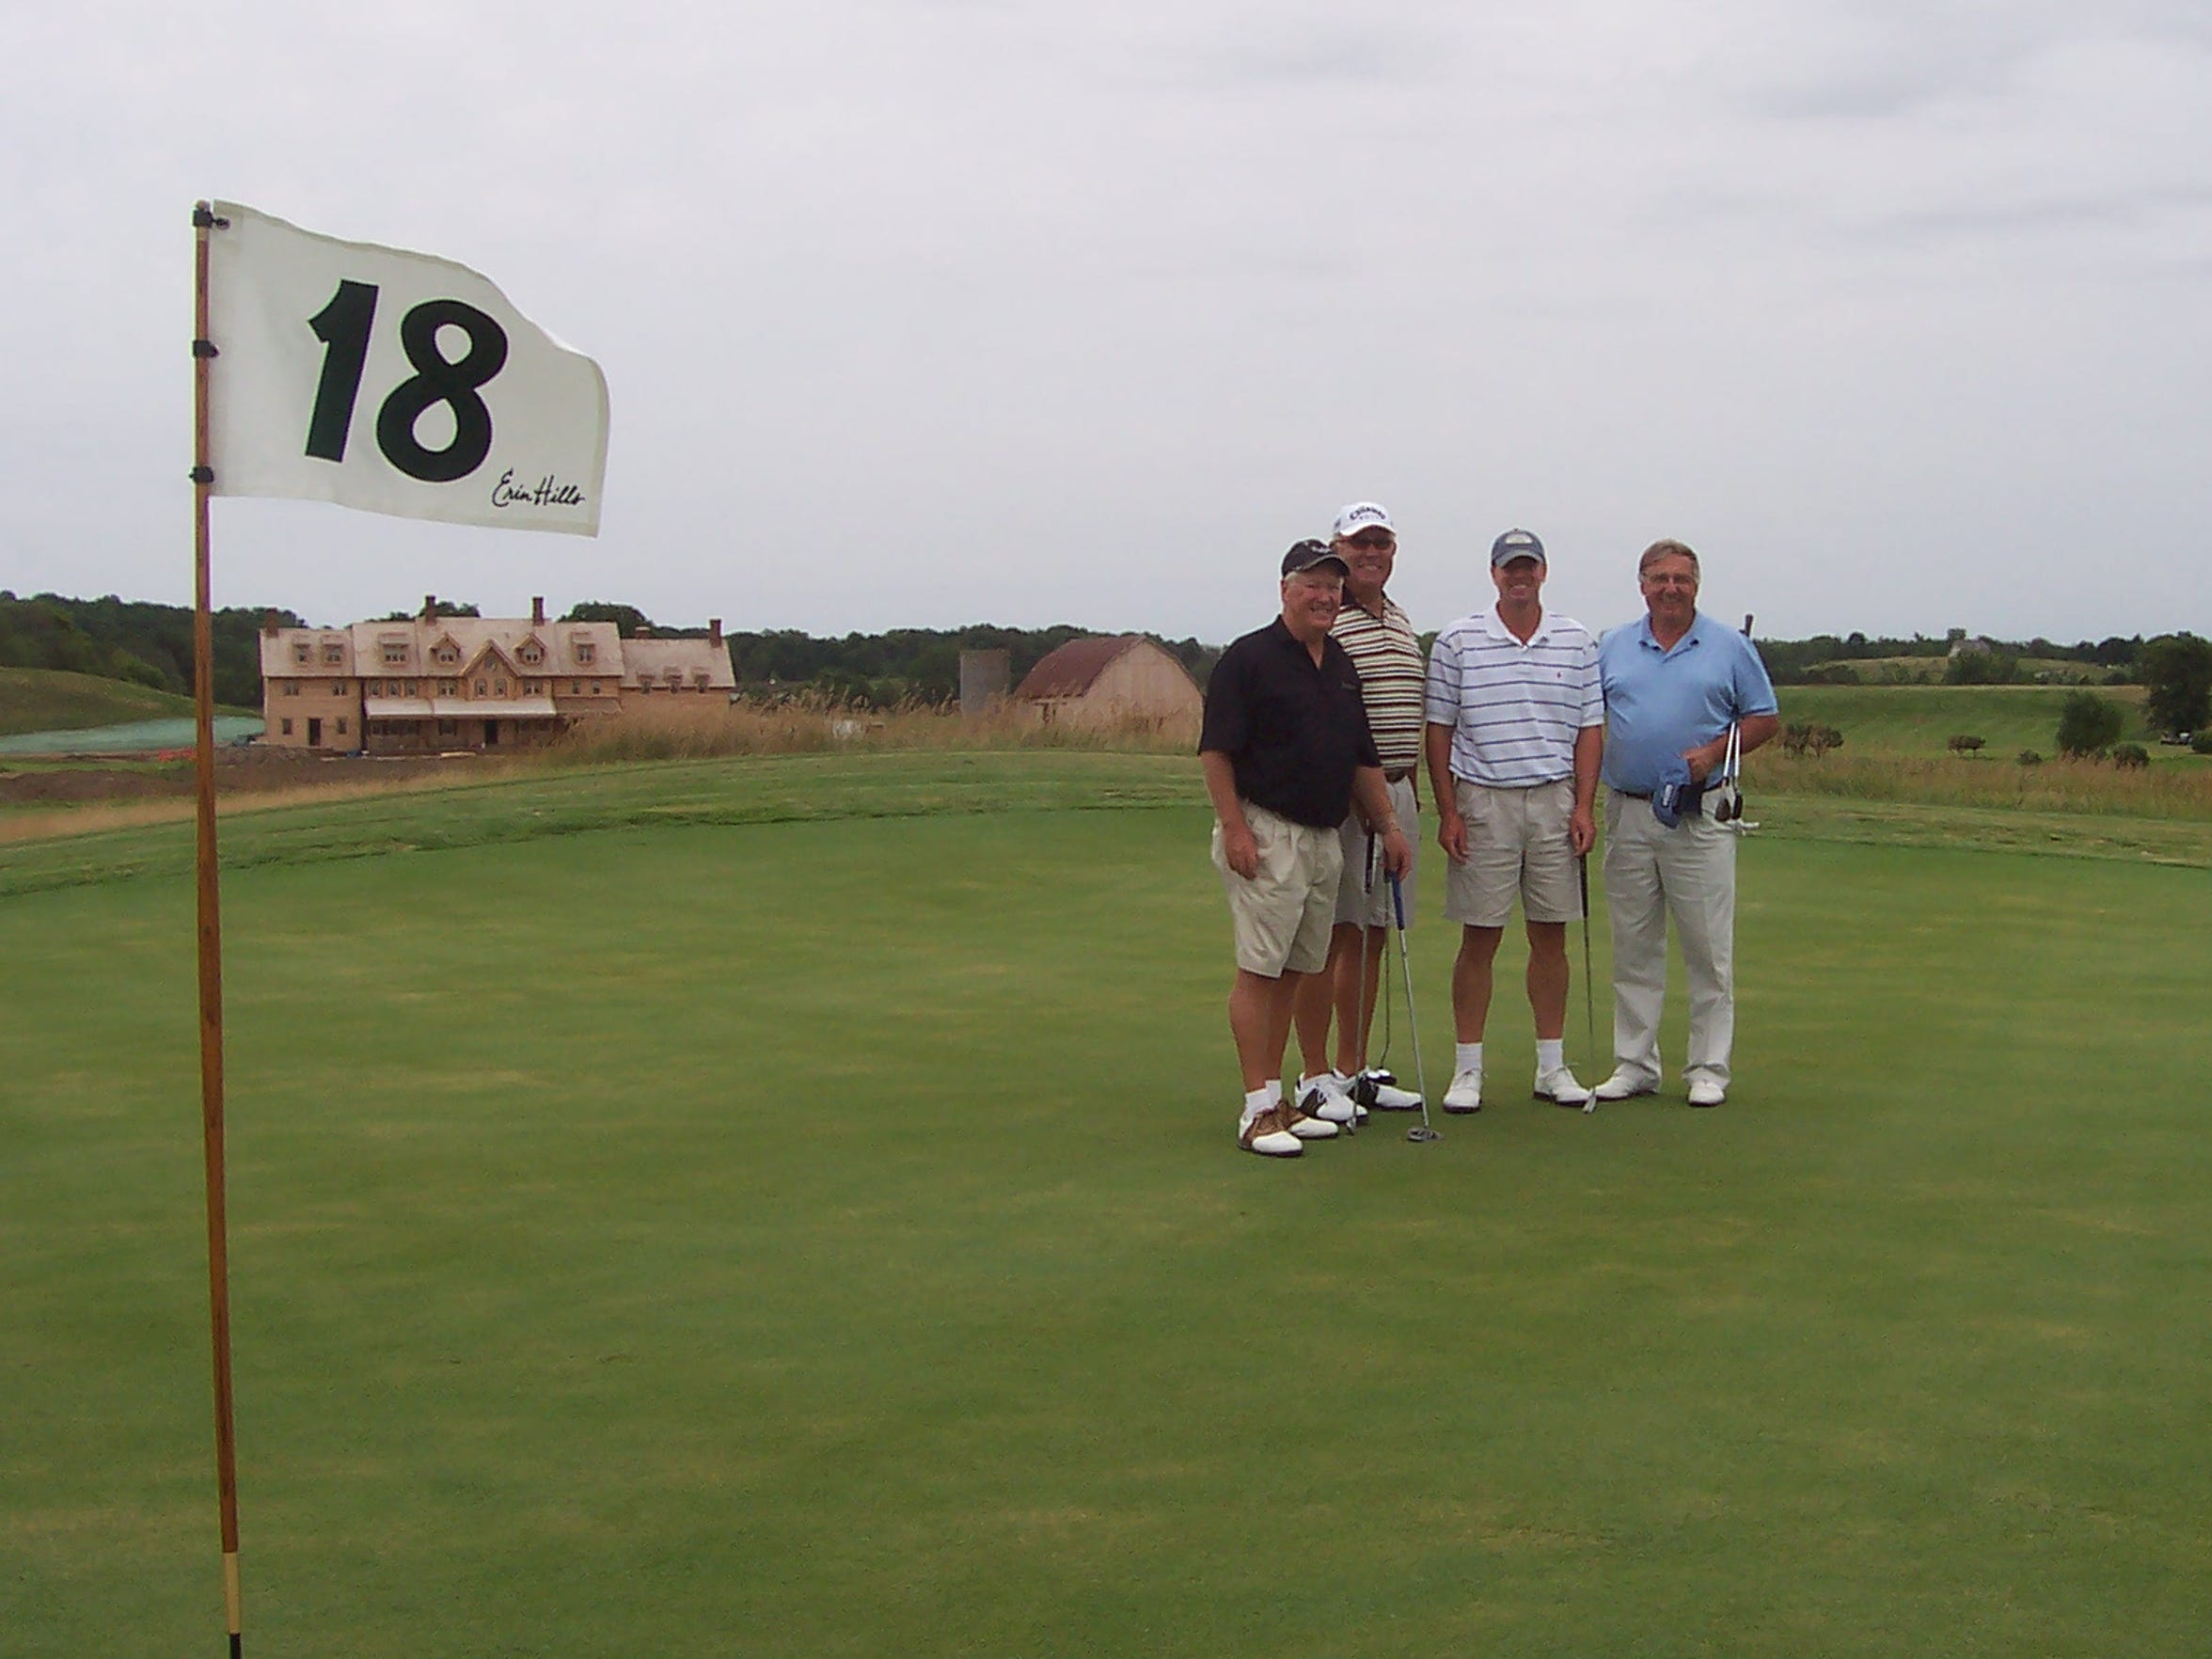 Steve Stricker (second from right) and his father-in-law, PGA professional Dennis Tiziani, pose on the 18th green at Erin Hills with the rest of their foursome after playing the fledgling golf course in July 2006.